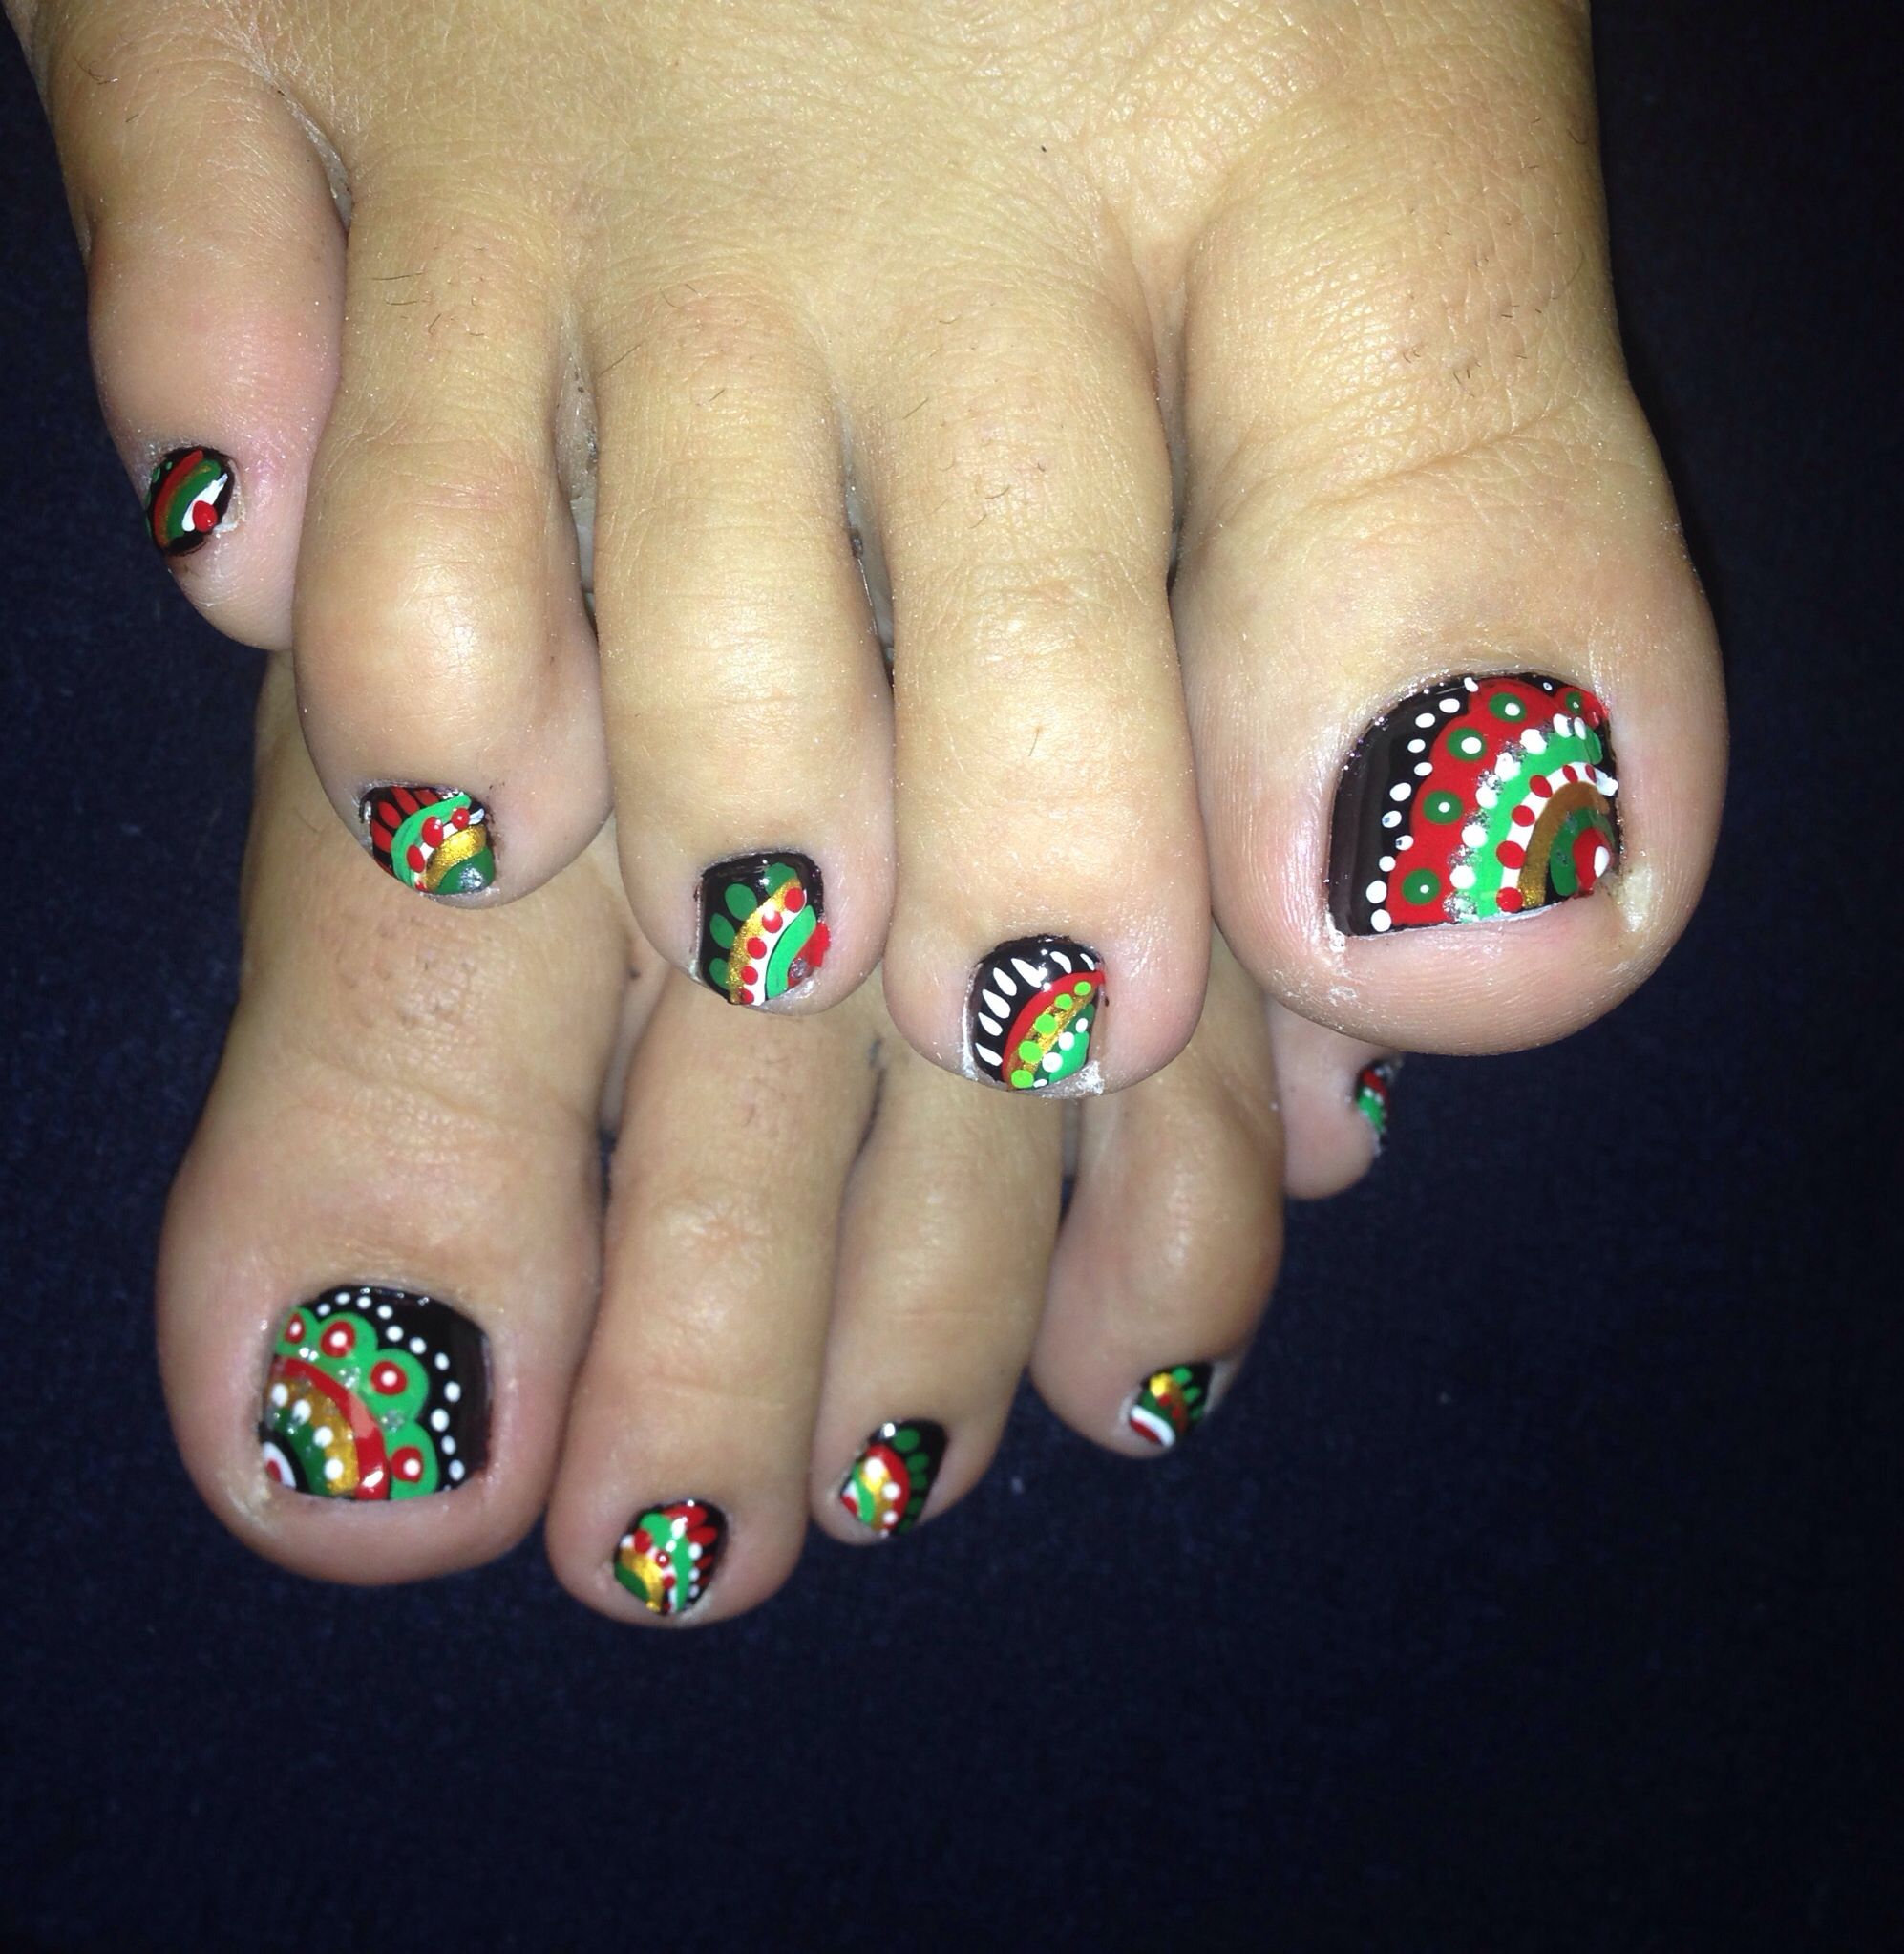 Toe Nail Art Holidays: #Christmasnailart #nailart #funkytoes